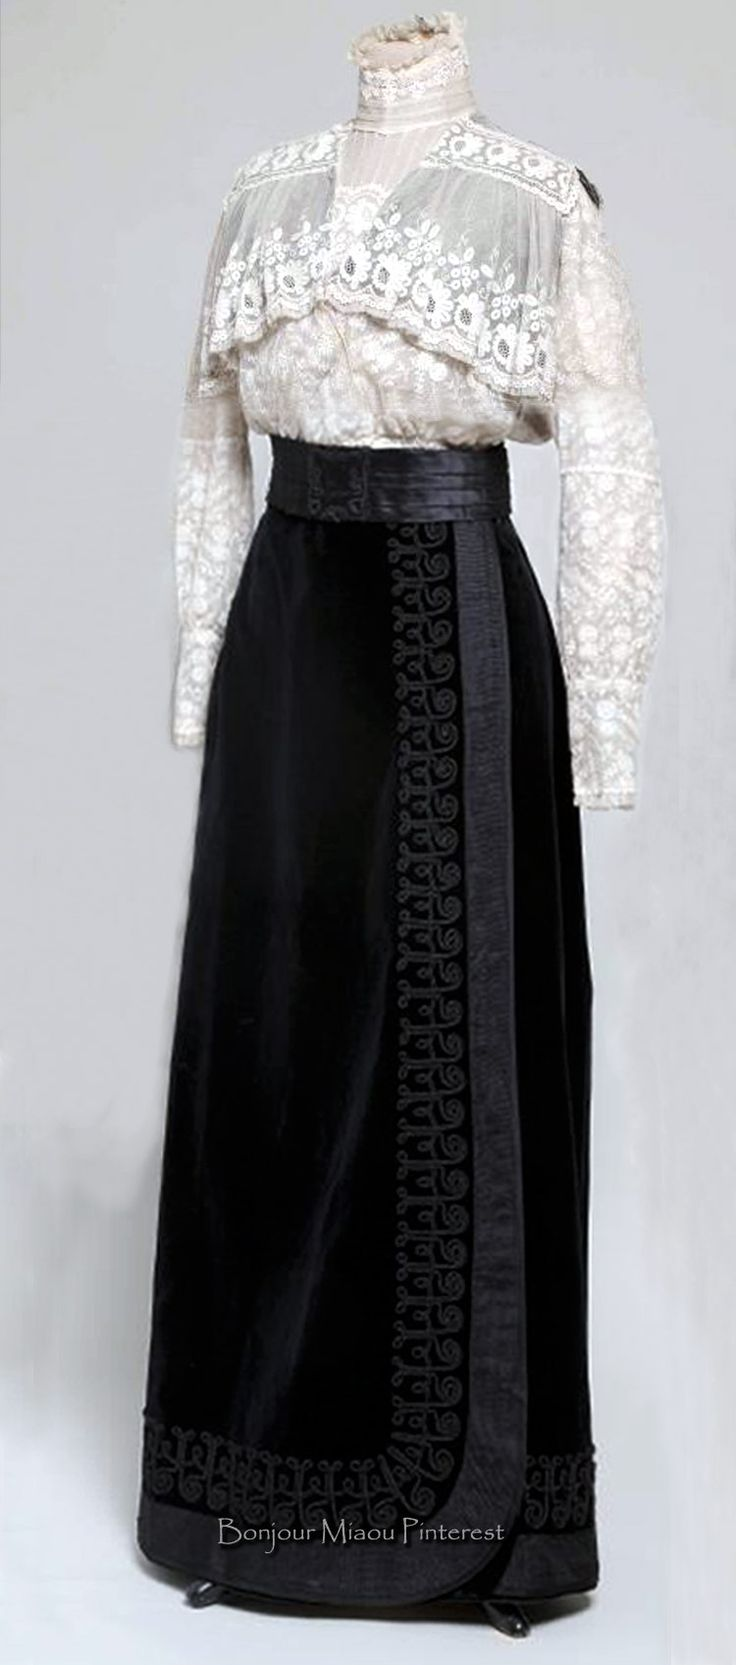 Blouse & skirt, Croatia, ca. 1908–09. Blouse is 2 types of lace on tulle; skirt is black velvet. Museum of Arts & Crafts, Zagreb